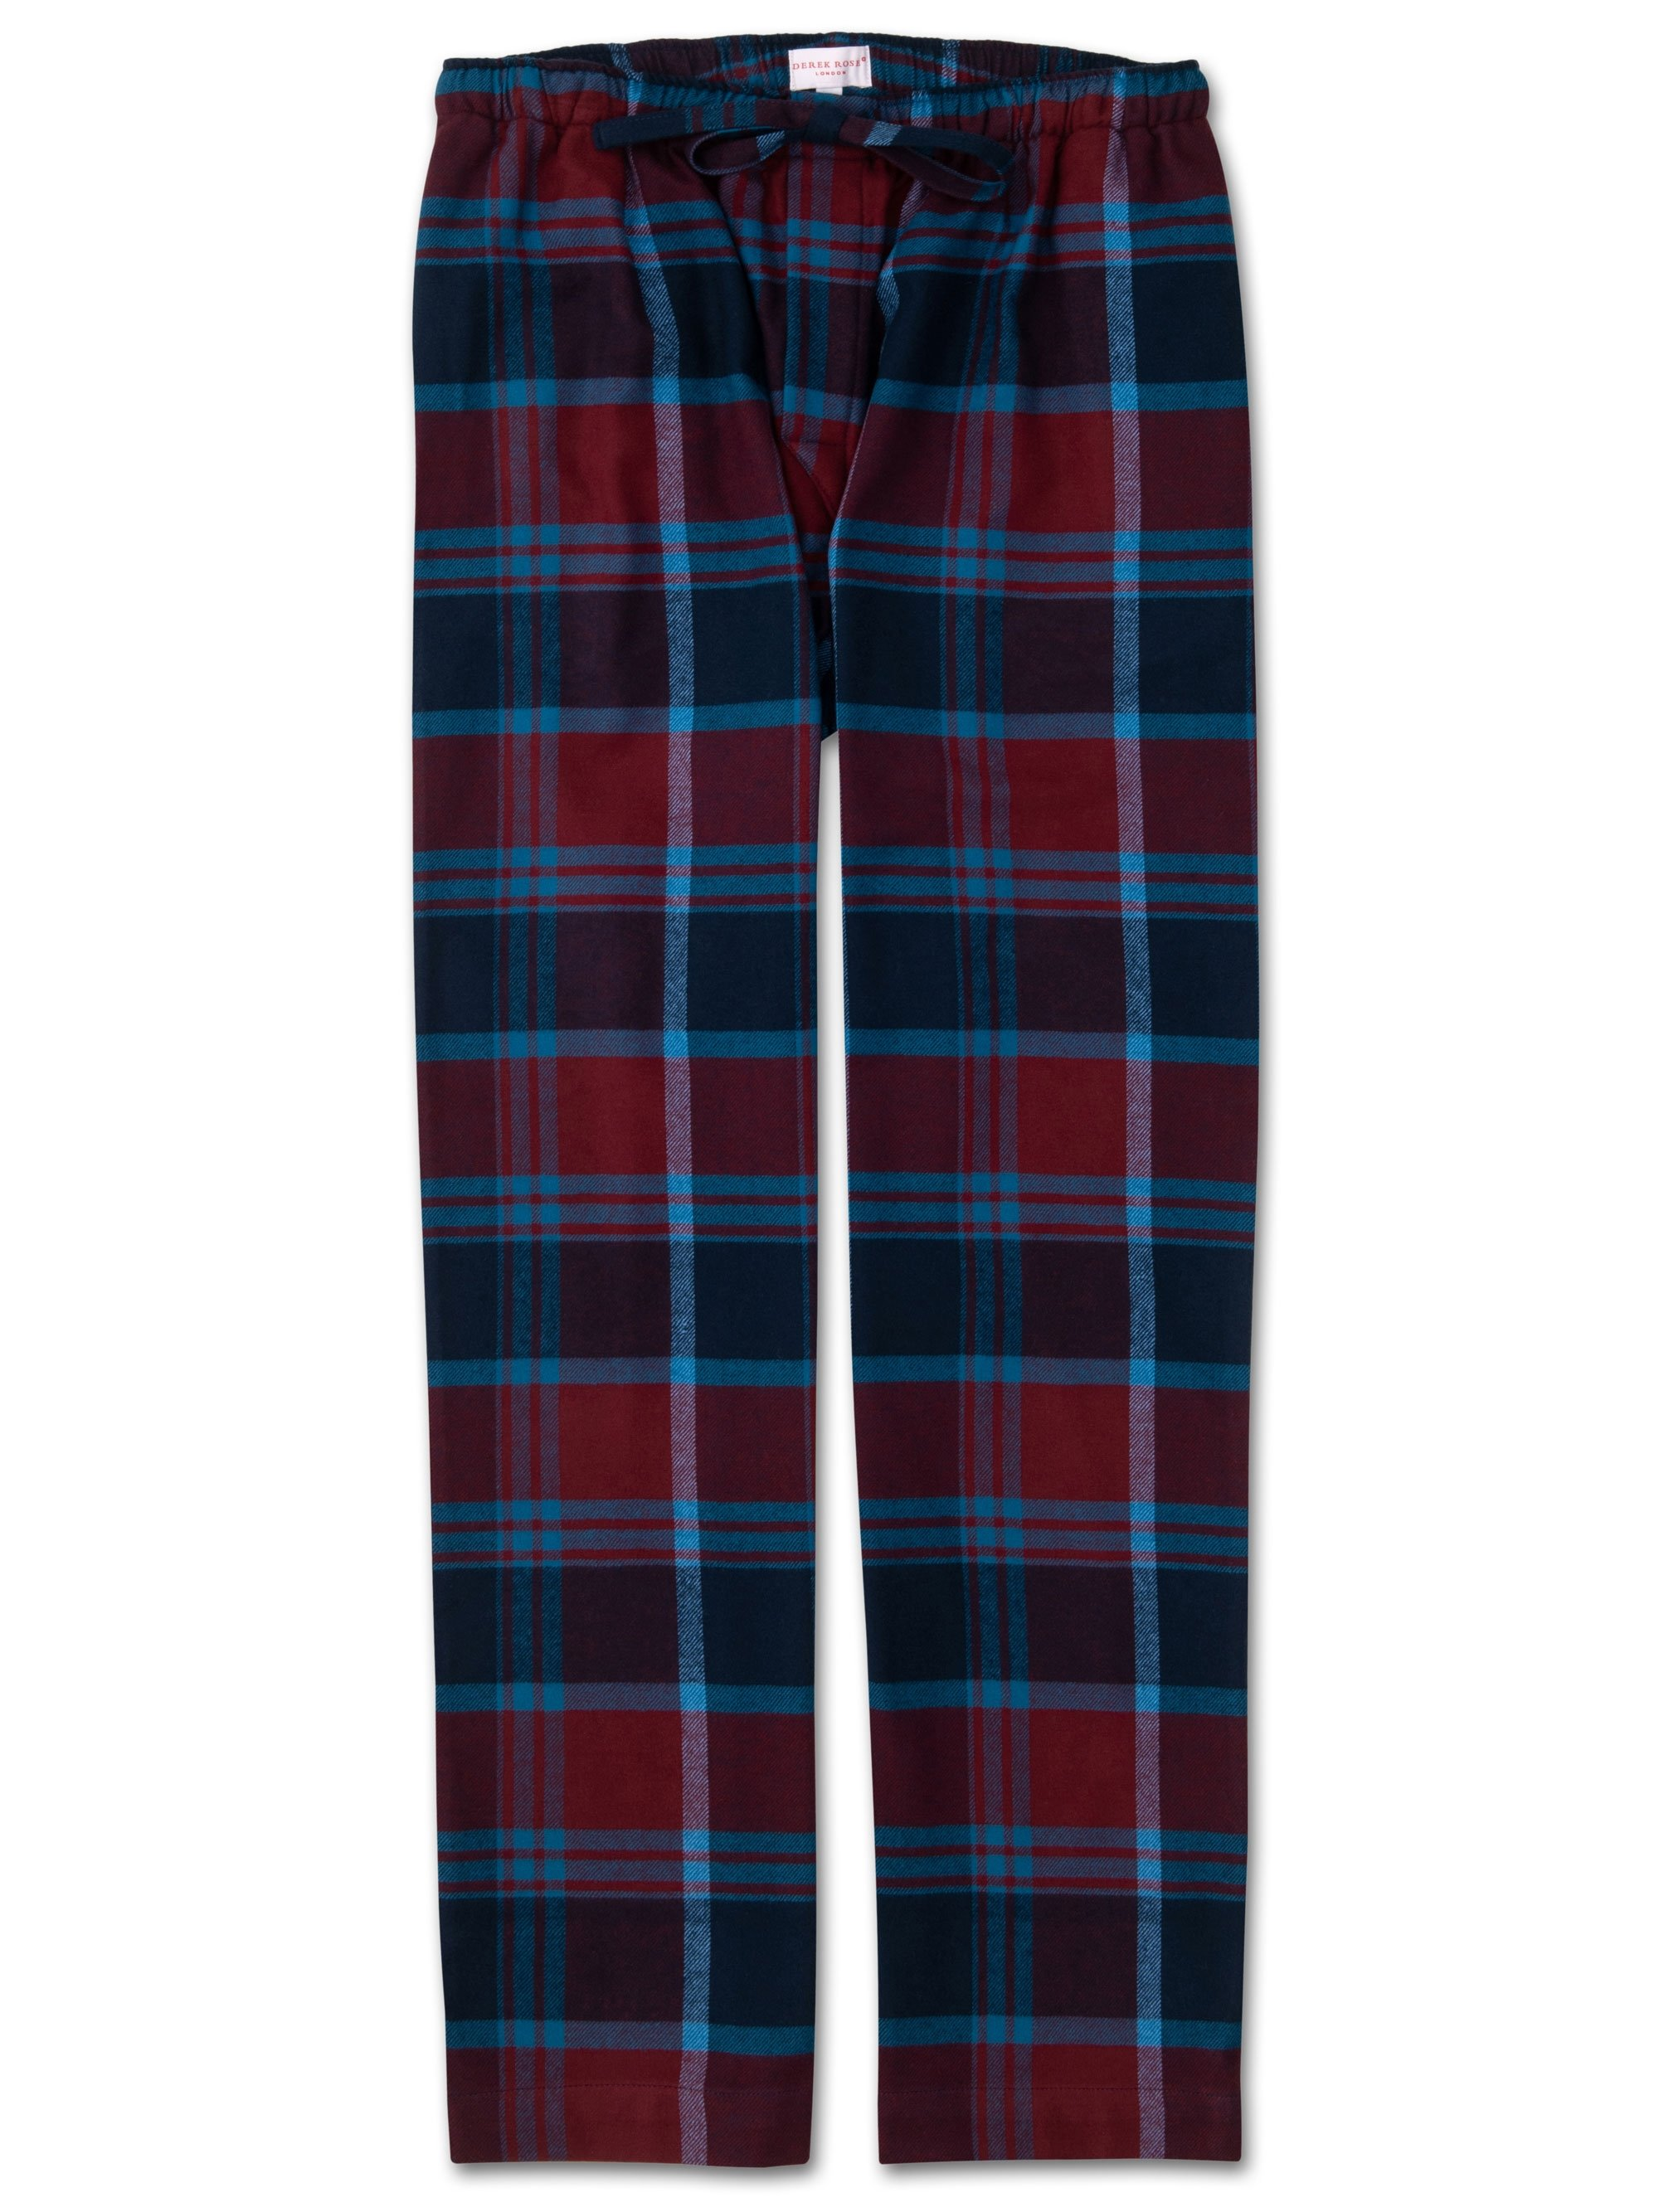 Men's Lounge Trousers Kelburn 7 Brushed Cotton Check Multi